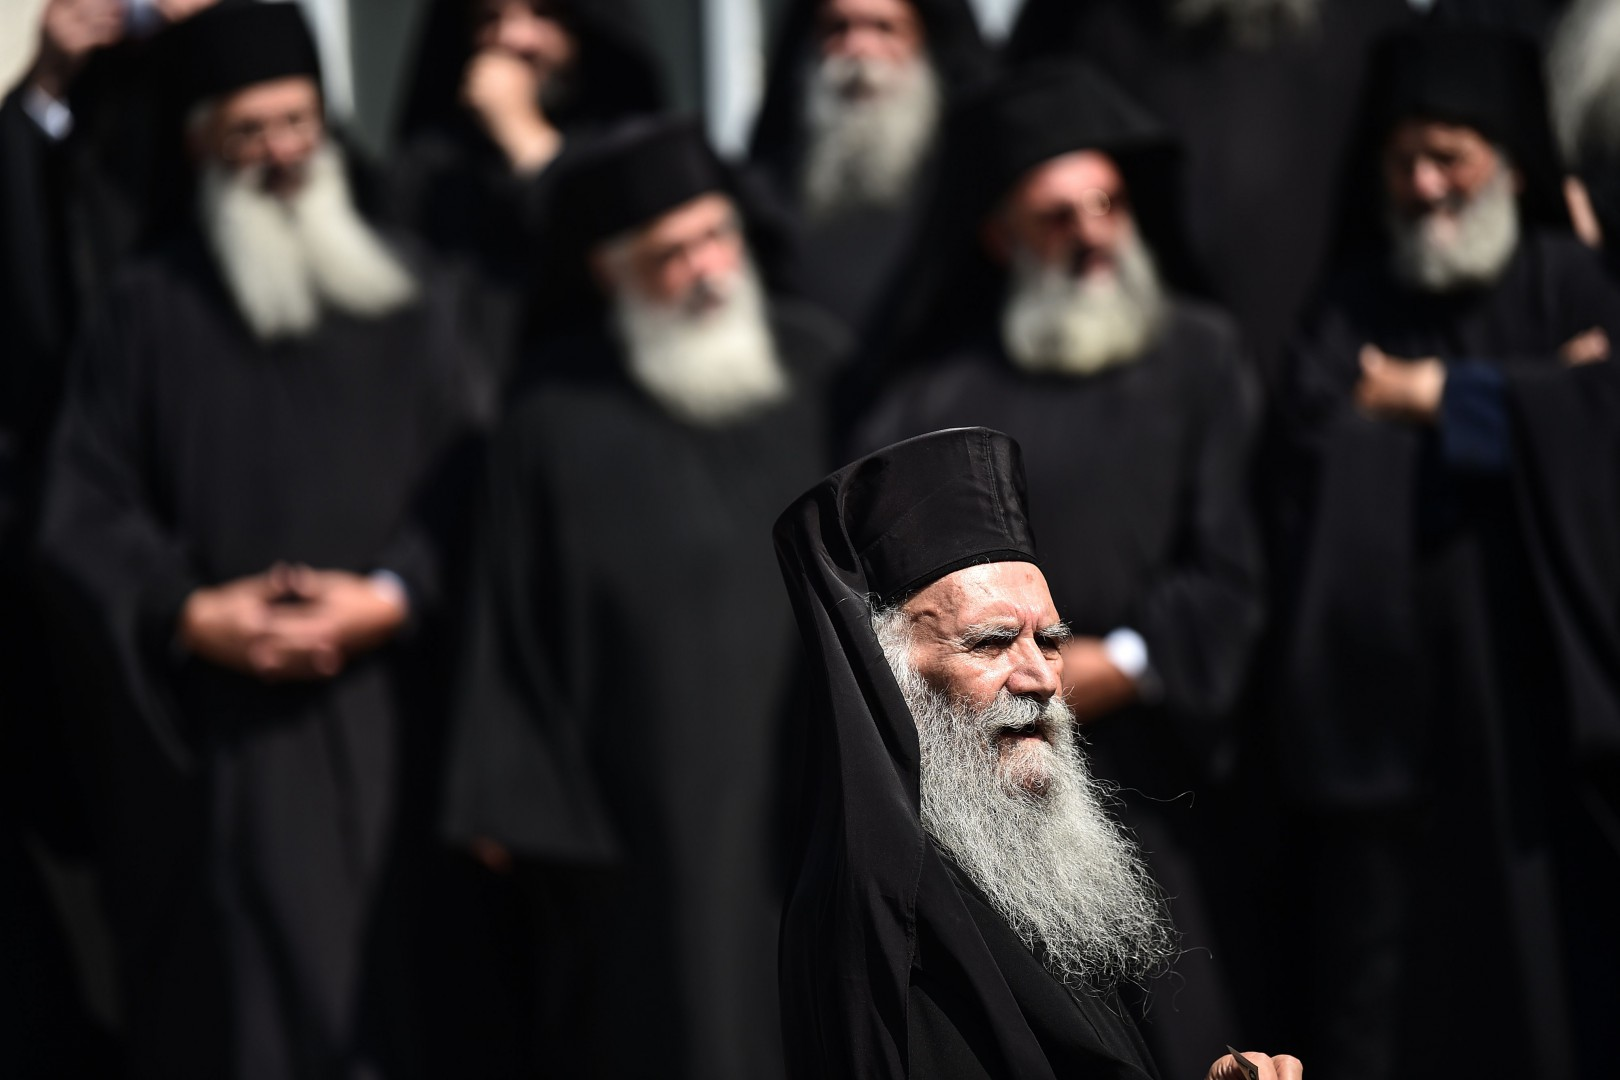 Orthodox clergies prepare for a family photo at The Hagia Triada Greek Orthodox church on September 2, 2018 in Istanbul, during the second day of meeting (synaxis) of the Hierarchy of the Ecumenical throne. - Ecumenical Patriarch Bartholomew I on August 31 hosted Russian Orthodox Patriarch Kirill in Istanbul for hugely unusual talks focused on whether Ukraine will get an independent church, a move strongly opposed by Moscow. (Photo by OZAN KOSE / AFP)